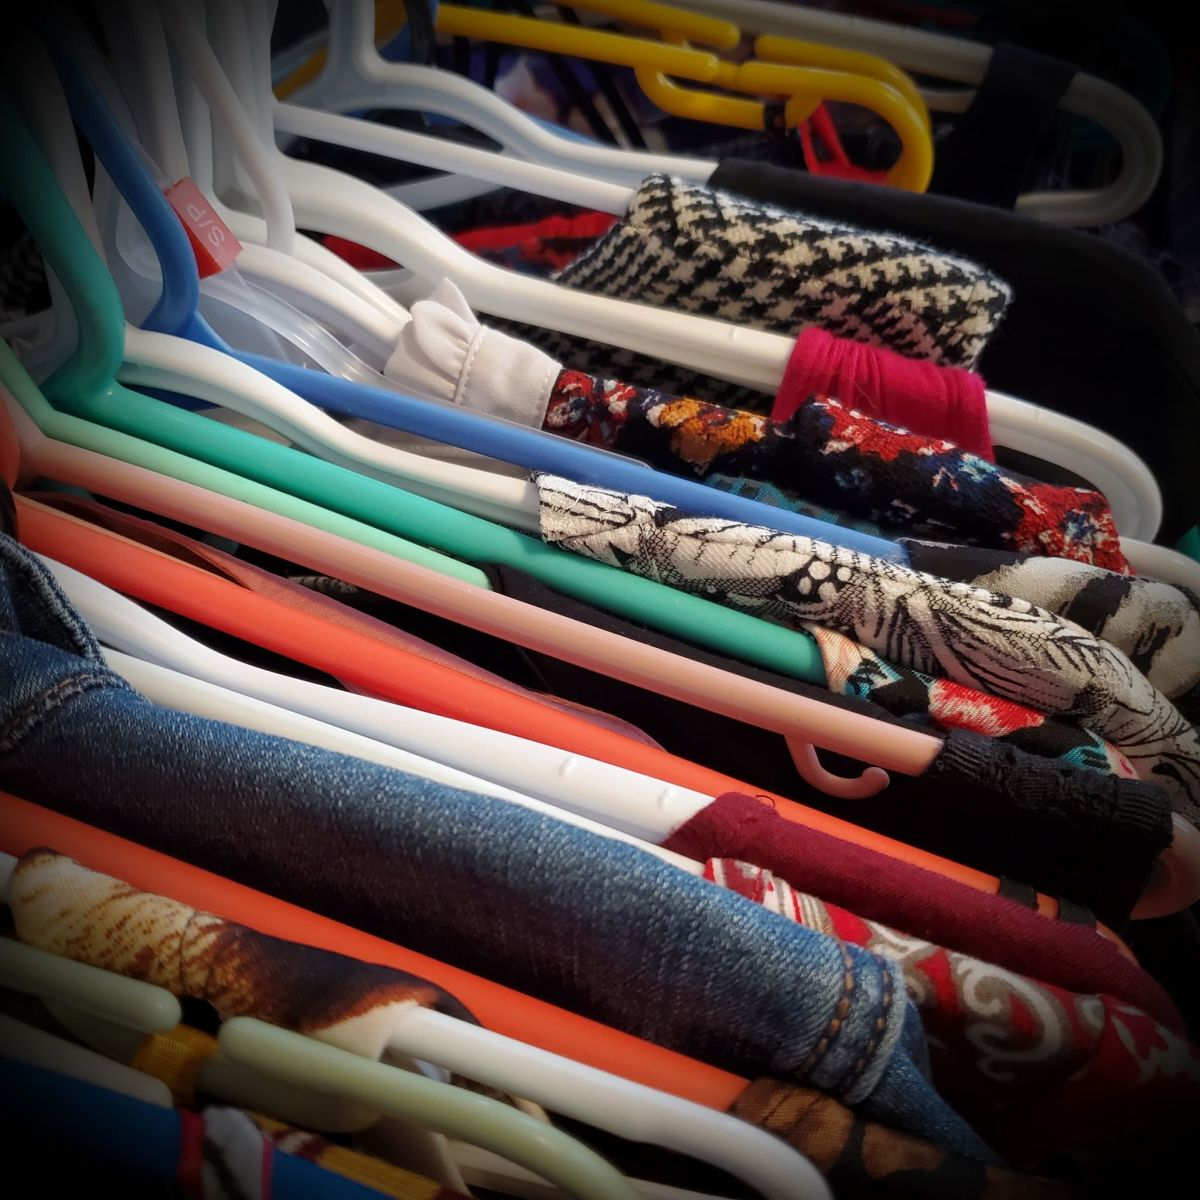 A Novice's Experience Purchasing a Pallet of Clothing